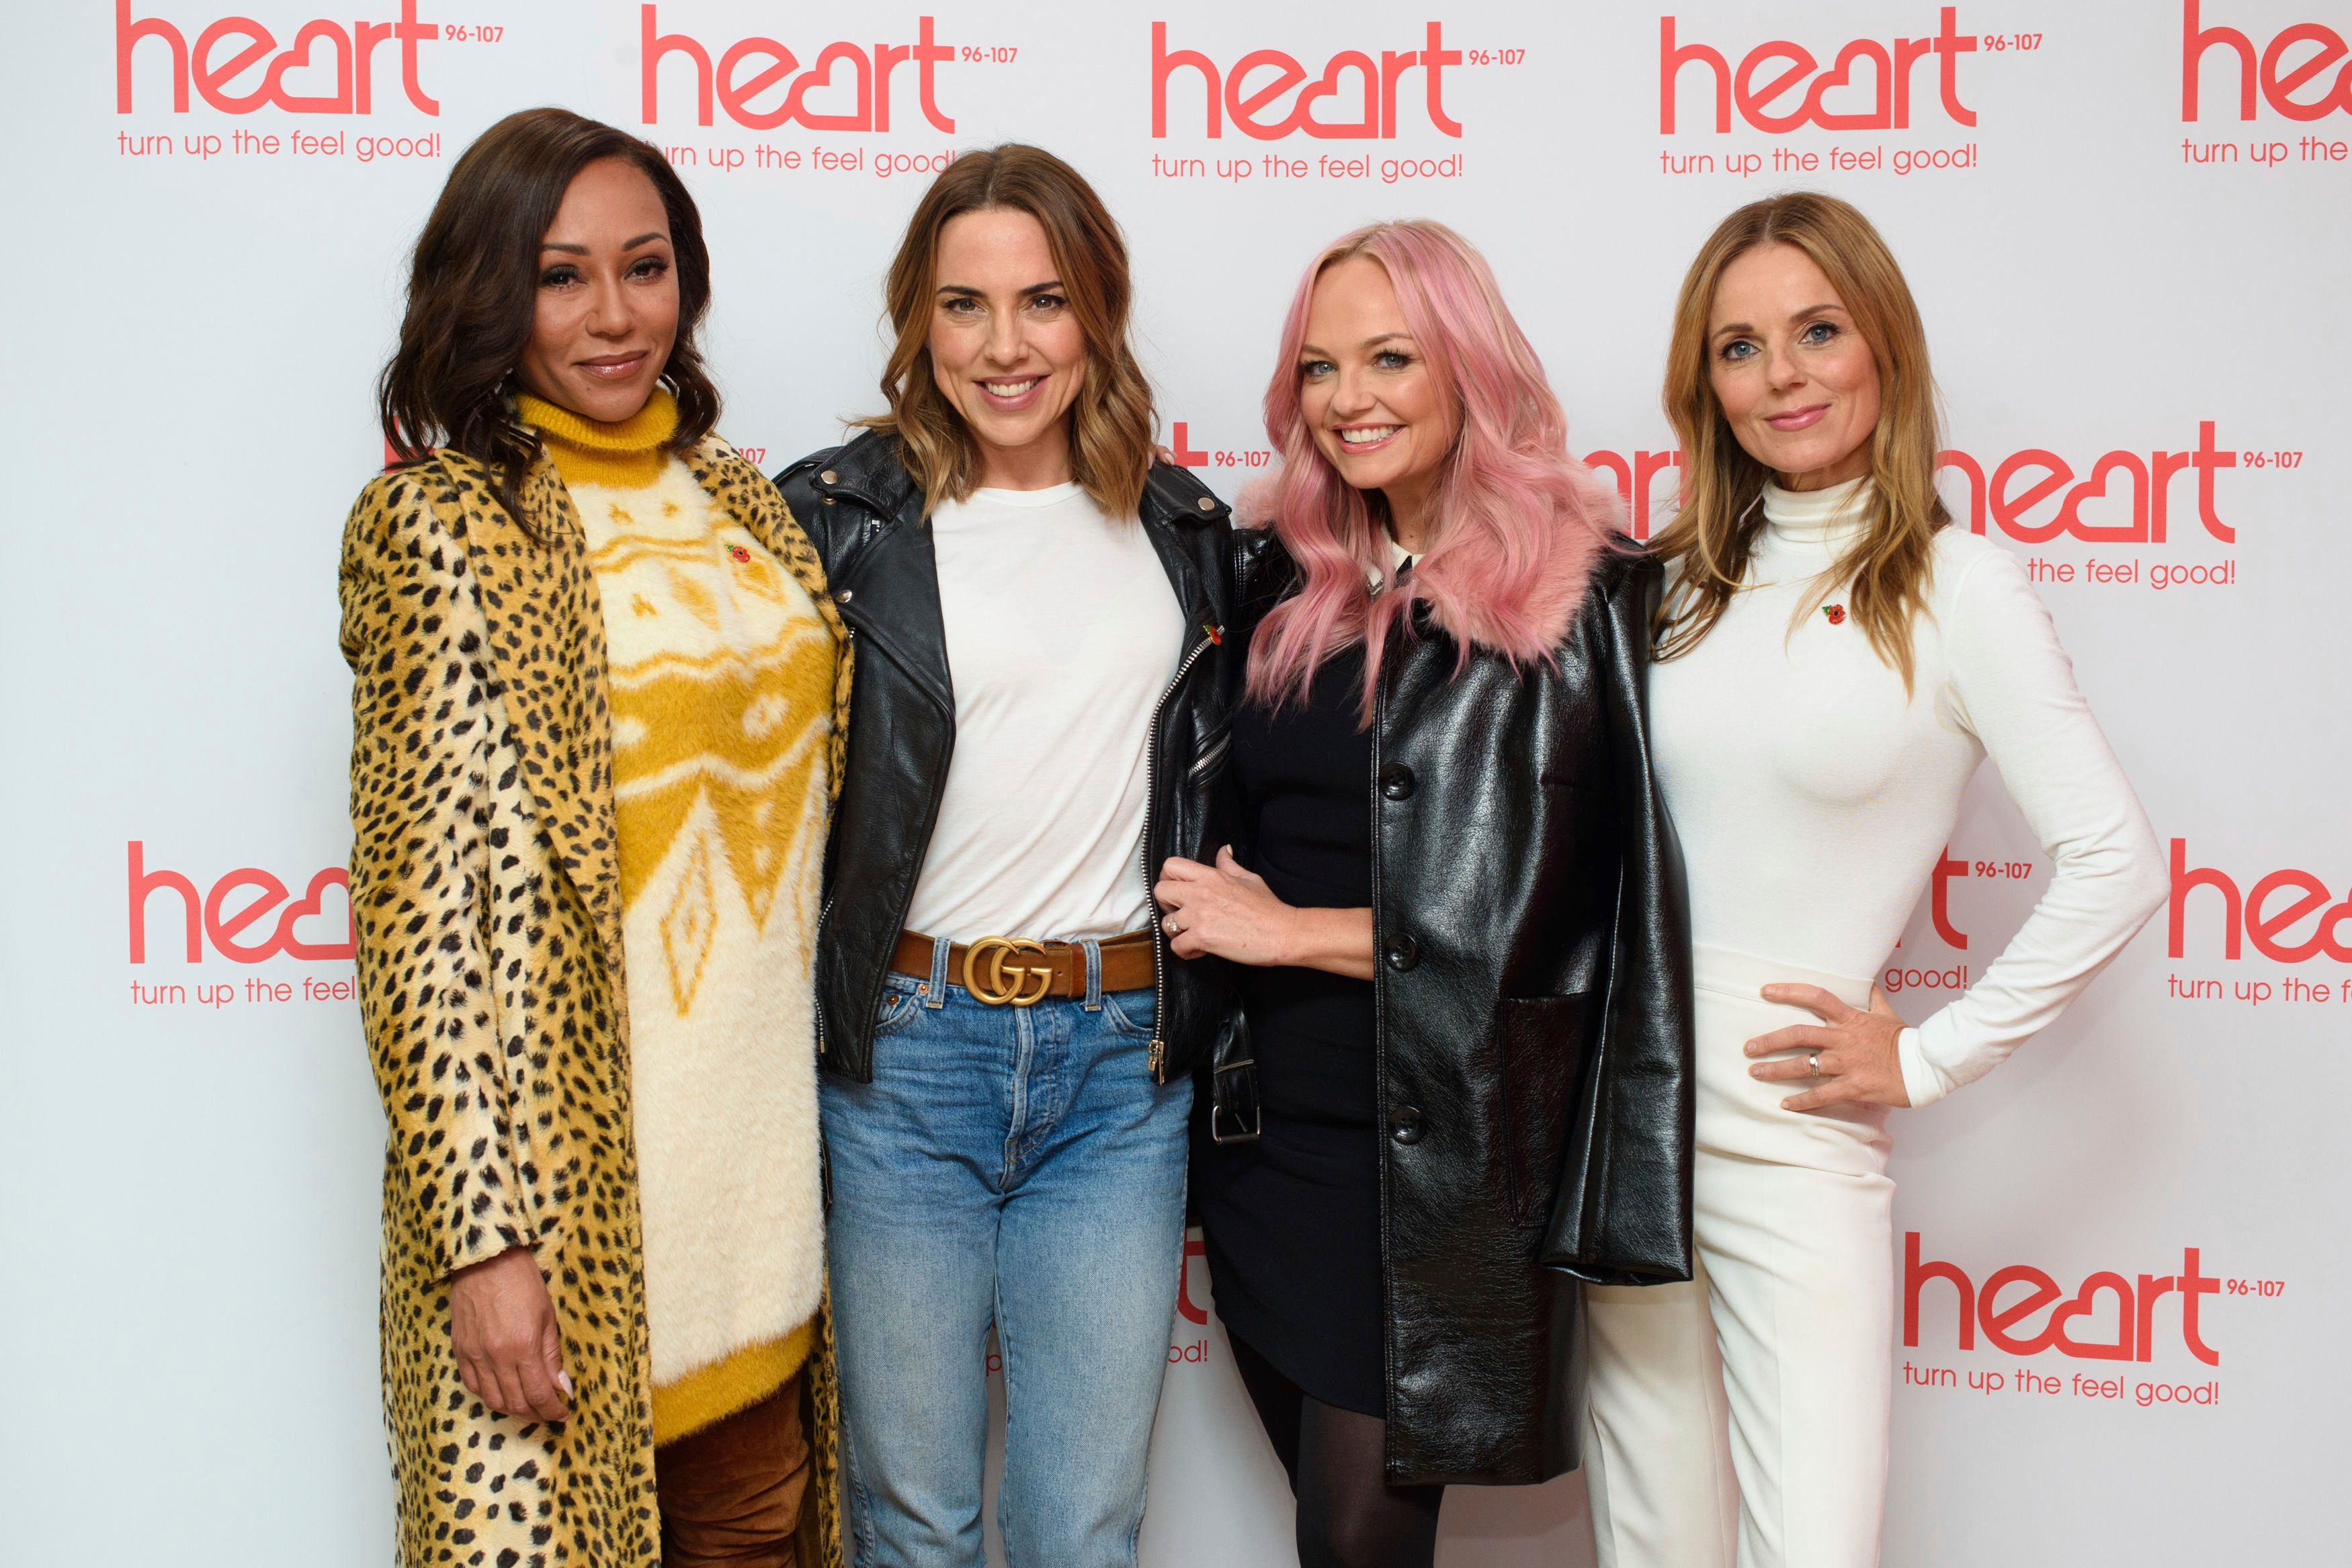 Spice Girls Reunite With Fans Ahead Of UK Stadium